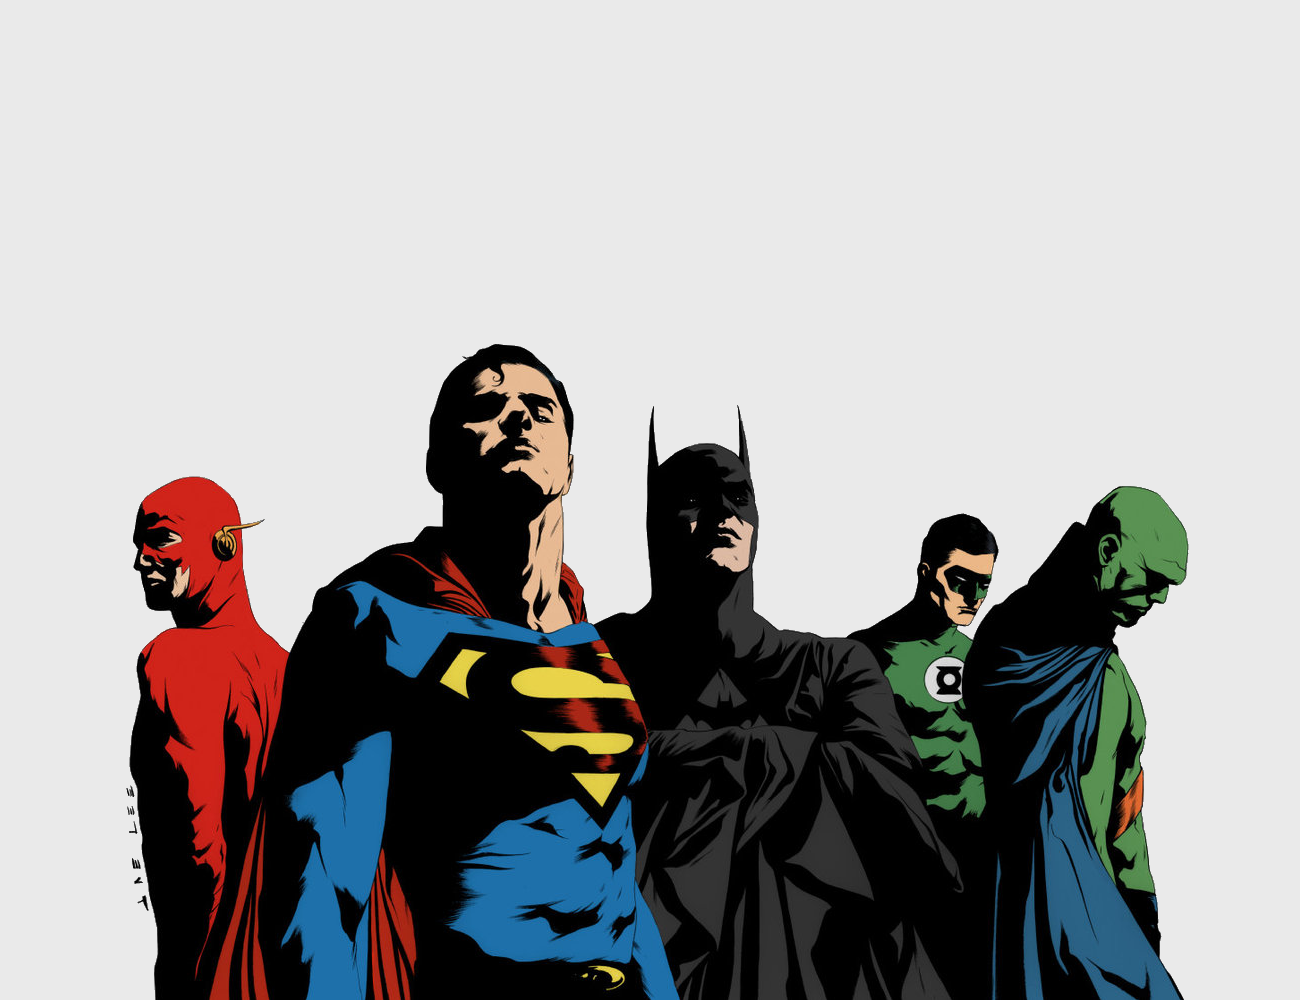 Cool Superhero Wallpapers Comics   superhero wallpapers 1300x1000